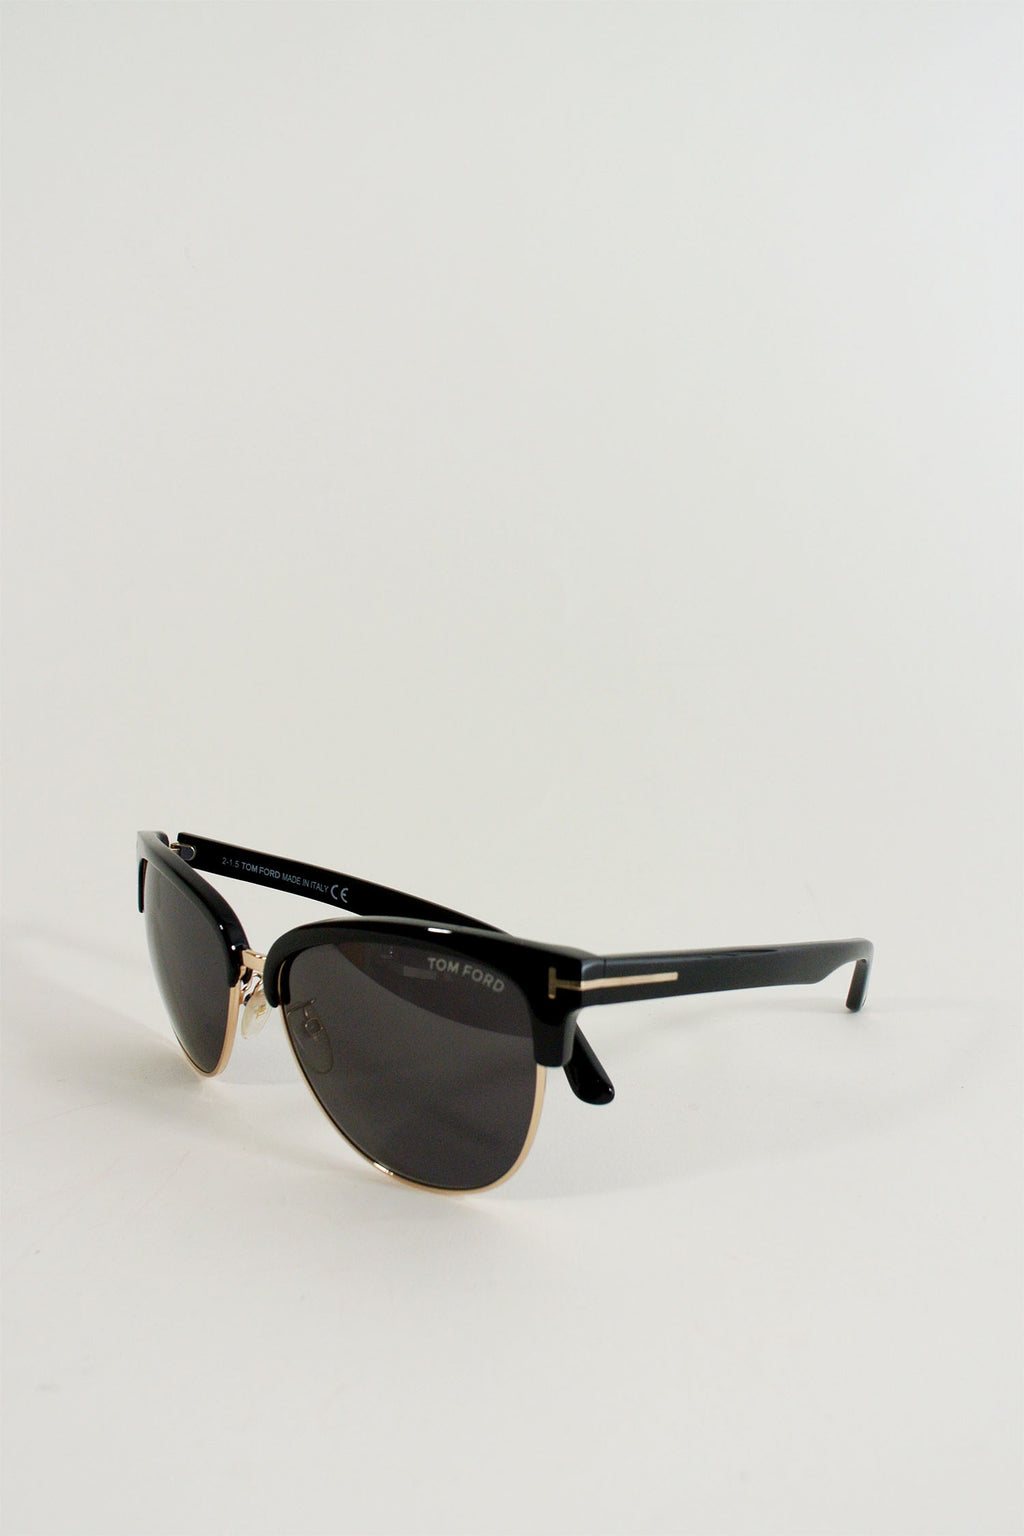 Tom Ford Black Fany Sunglasses